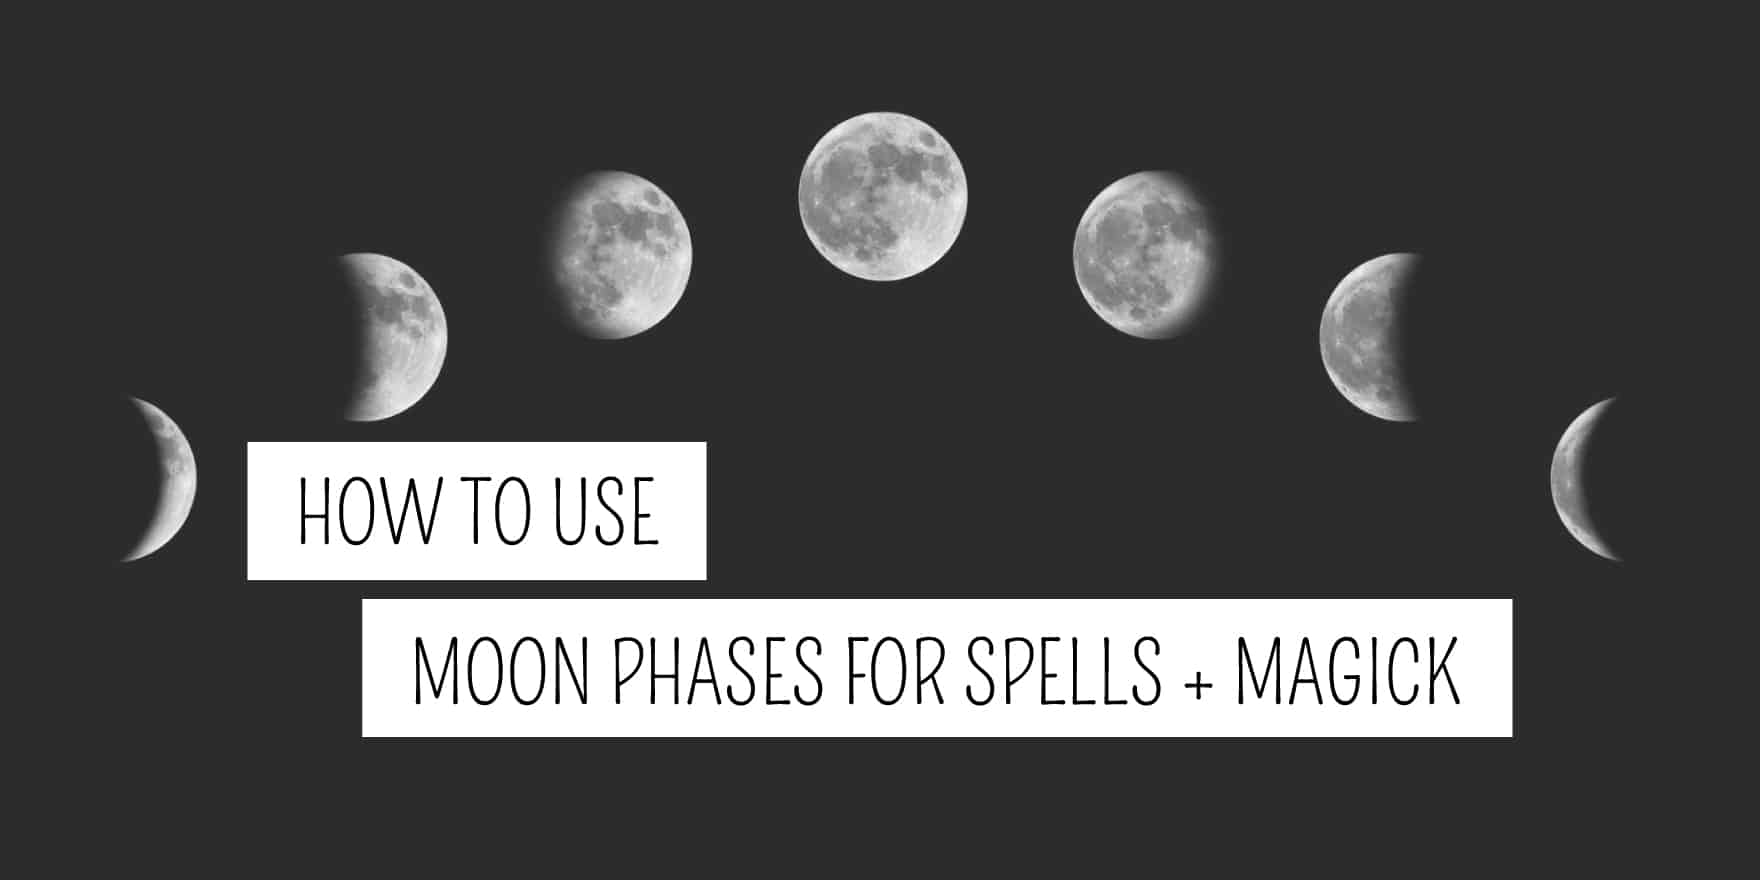 How To Use The Moon Phases For Spells And Magick Plentiful Earth